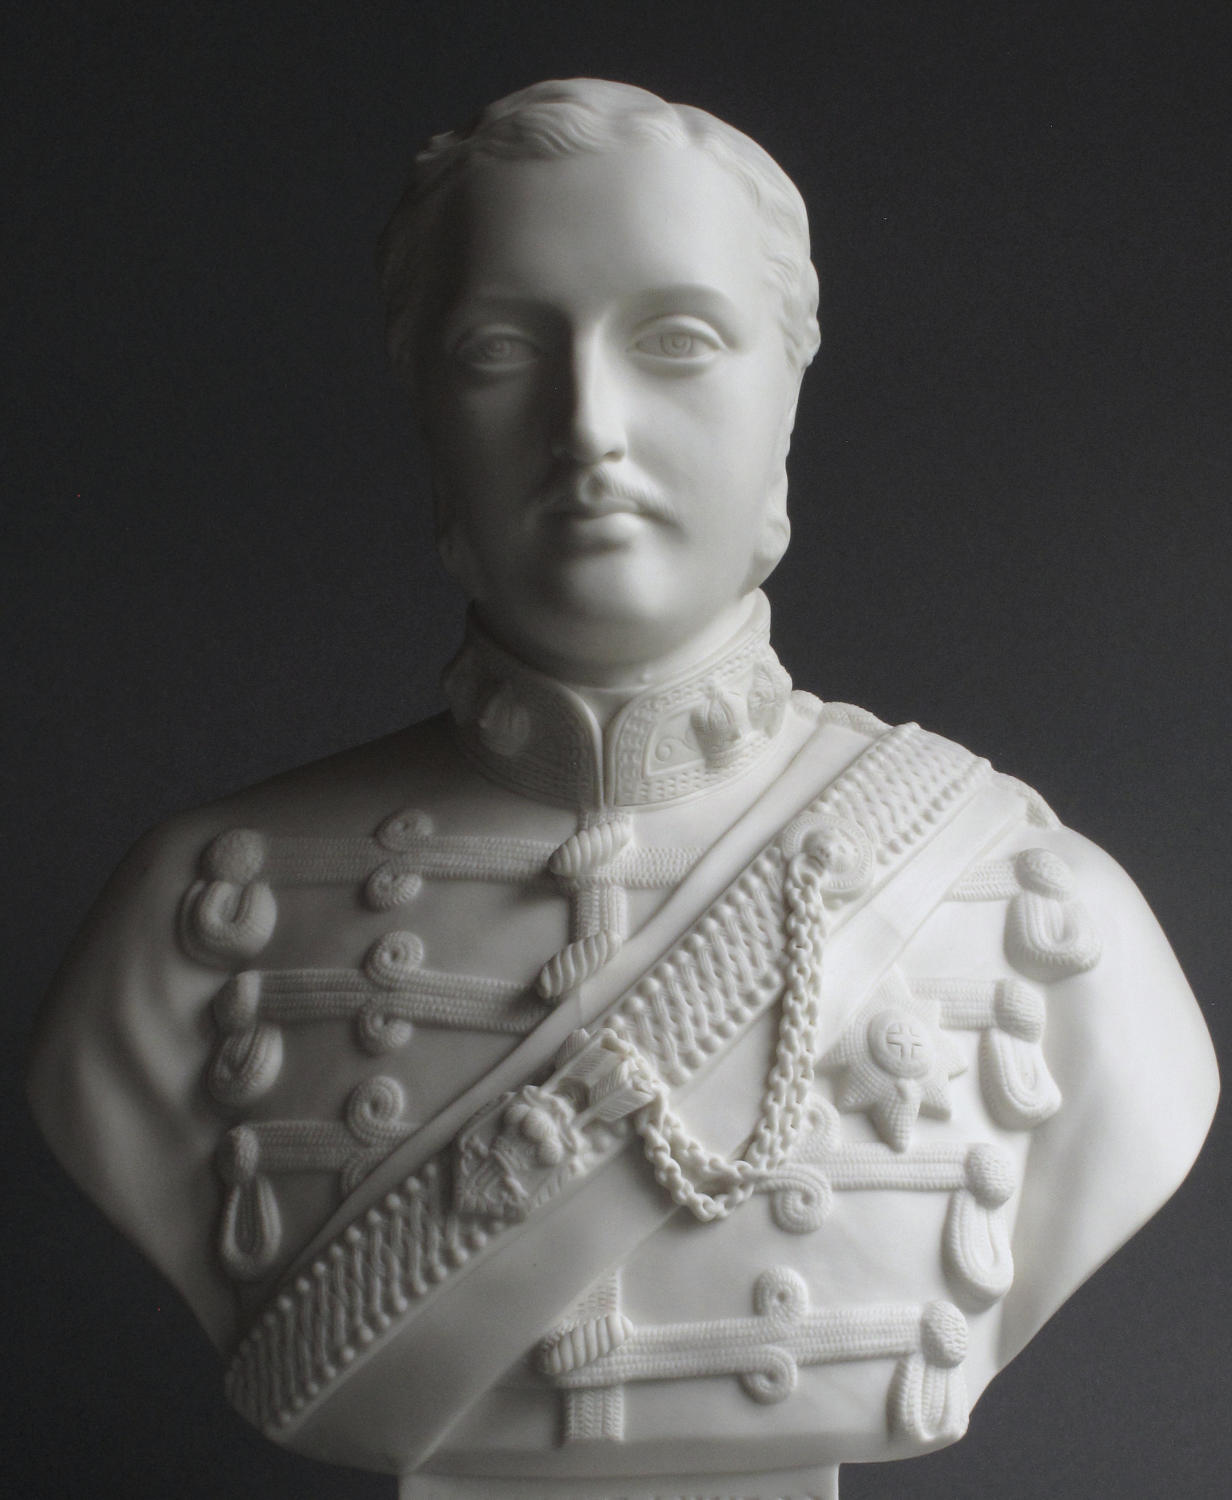 A large Parian bust of Albert Edward, Prince of Wales,  by Copeland